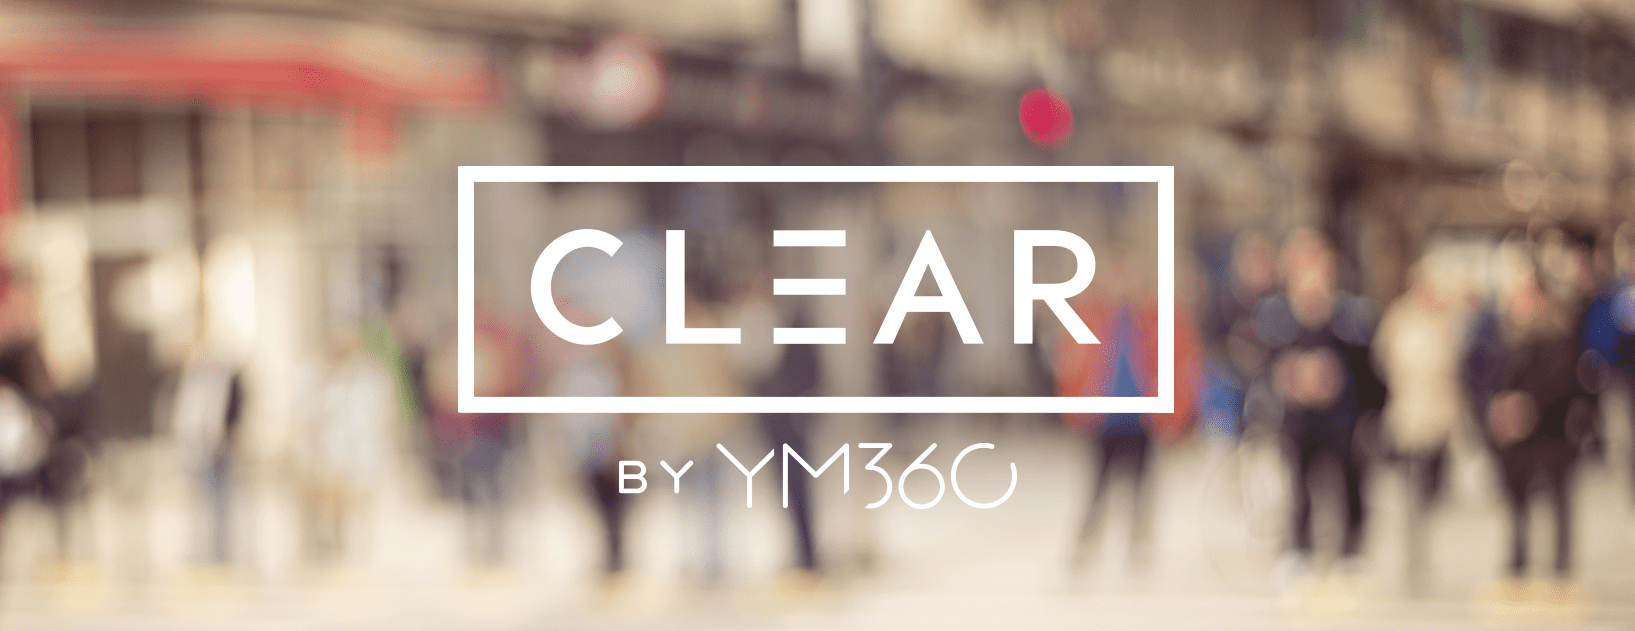 Clear Conference – YM360